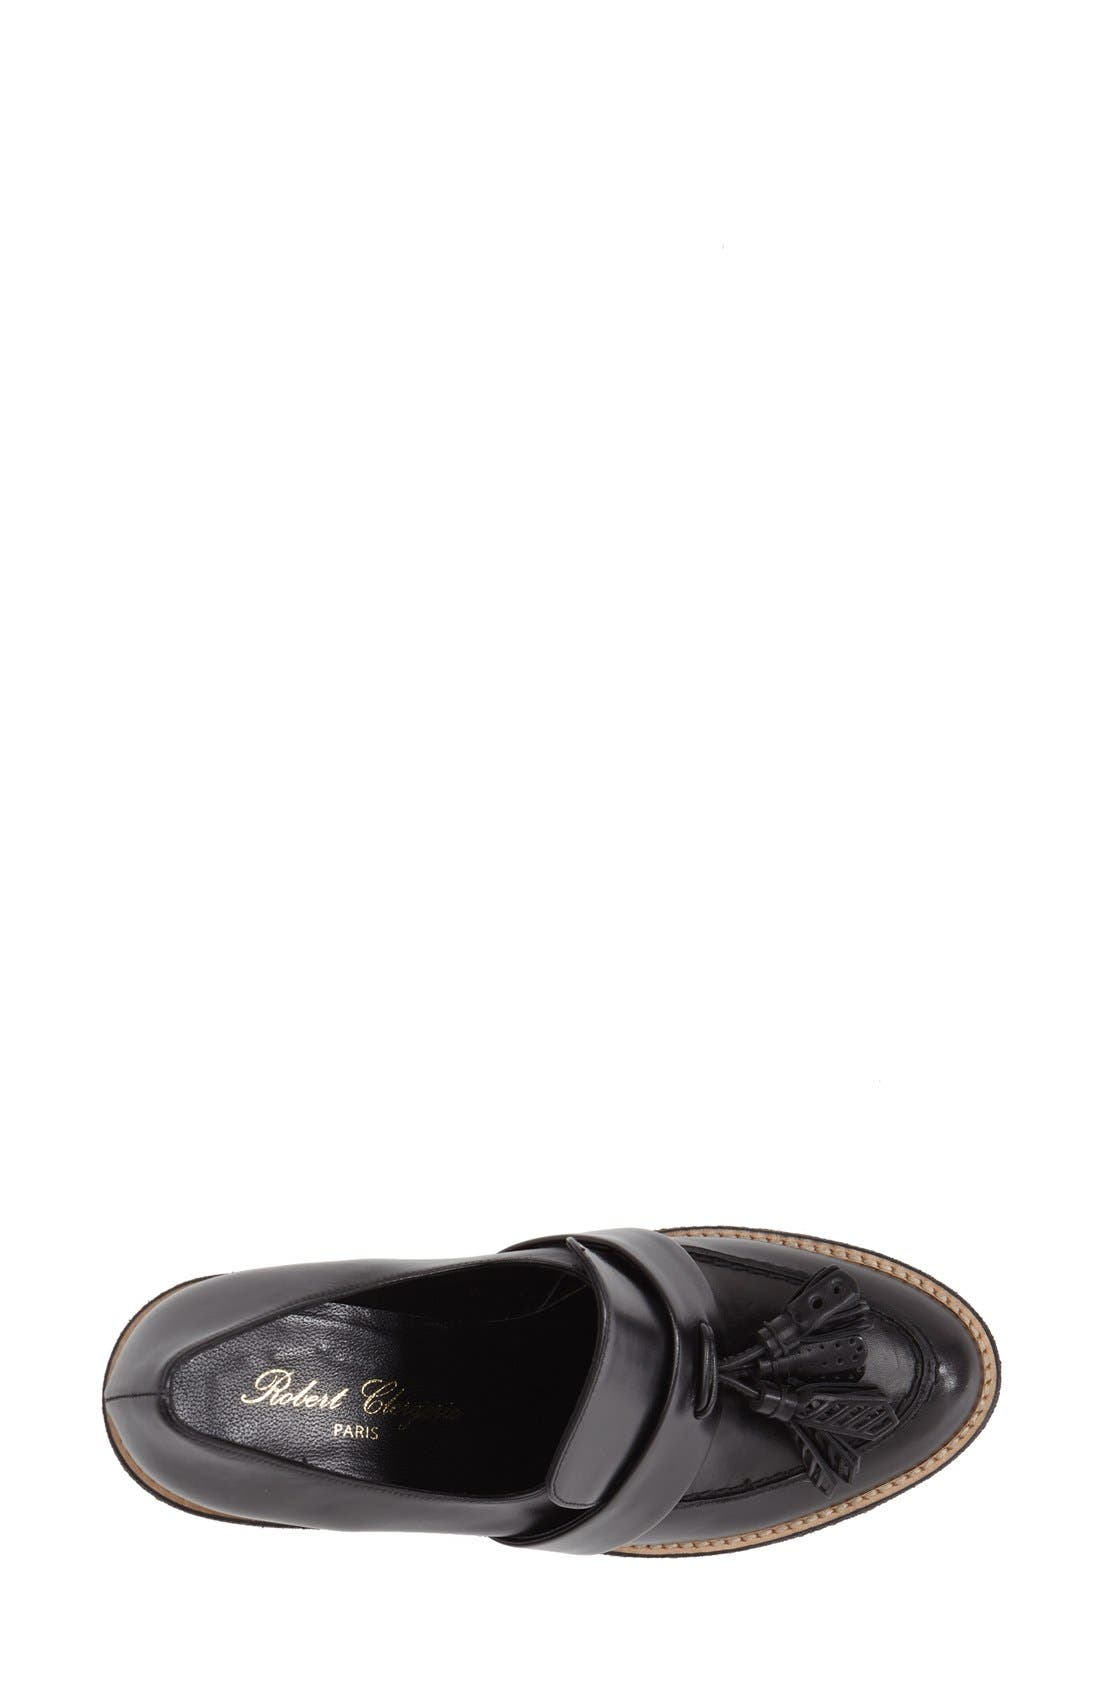 ROBERT CLERGERIE, 'Astrid' Wedge Loafer, Alternate thumbnail 2, color, 001